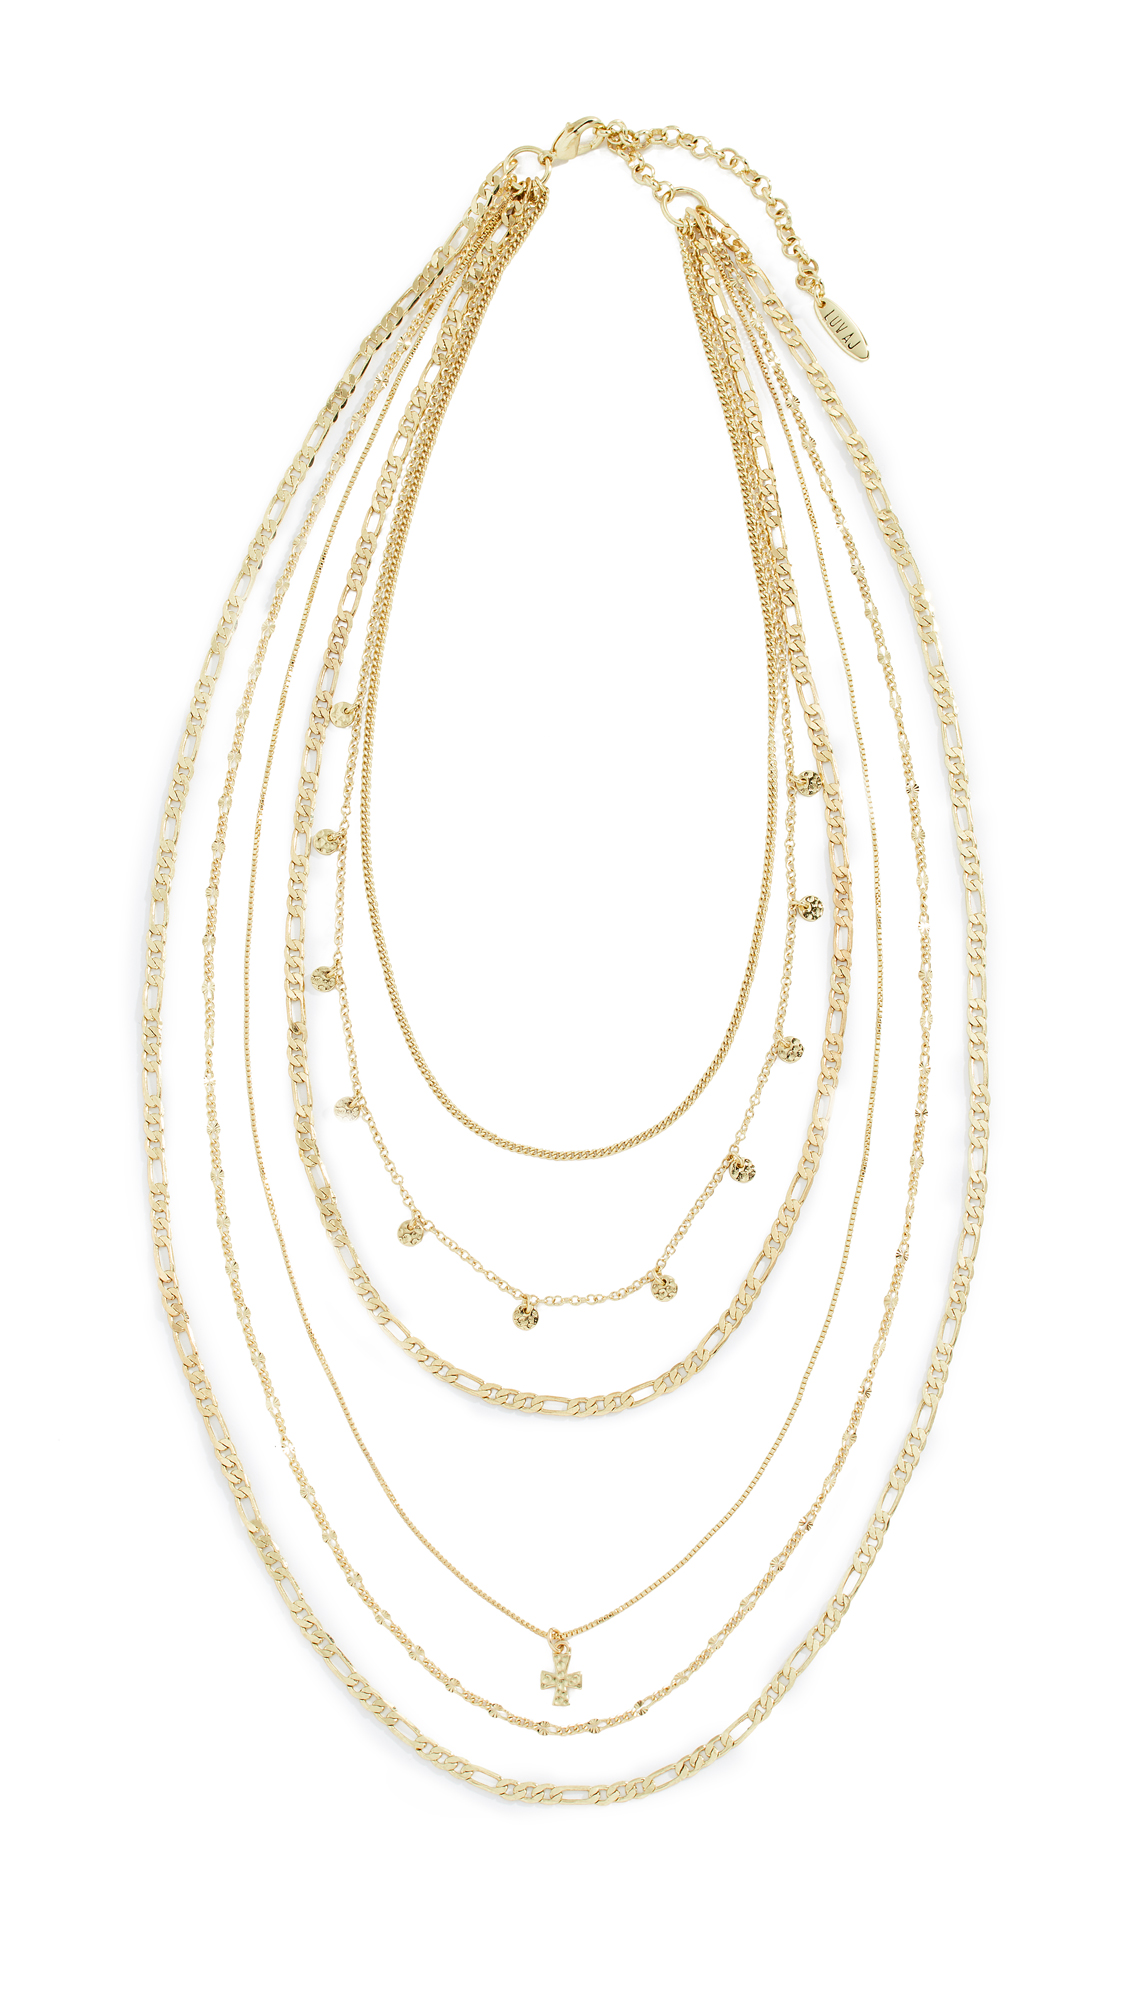 LUV AJ Hammered Cross Layered Charm Necklace in Yellow Gold